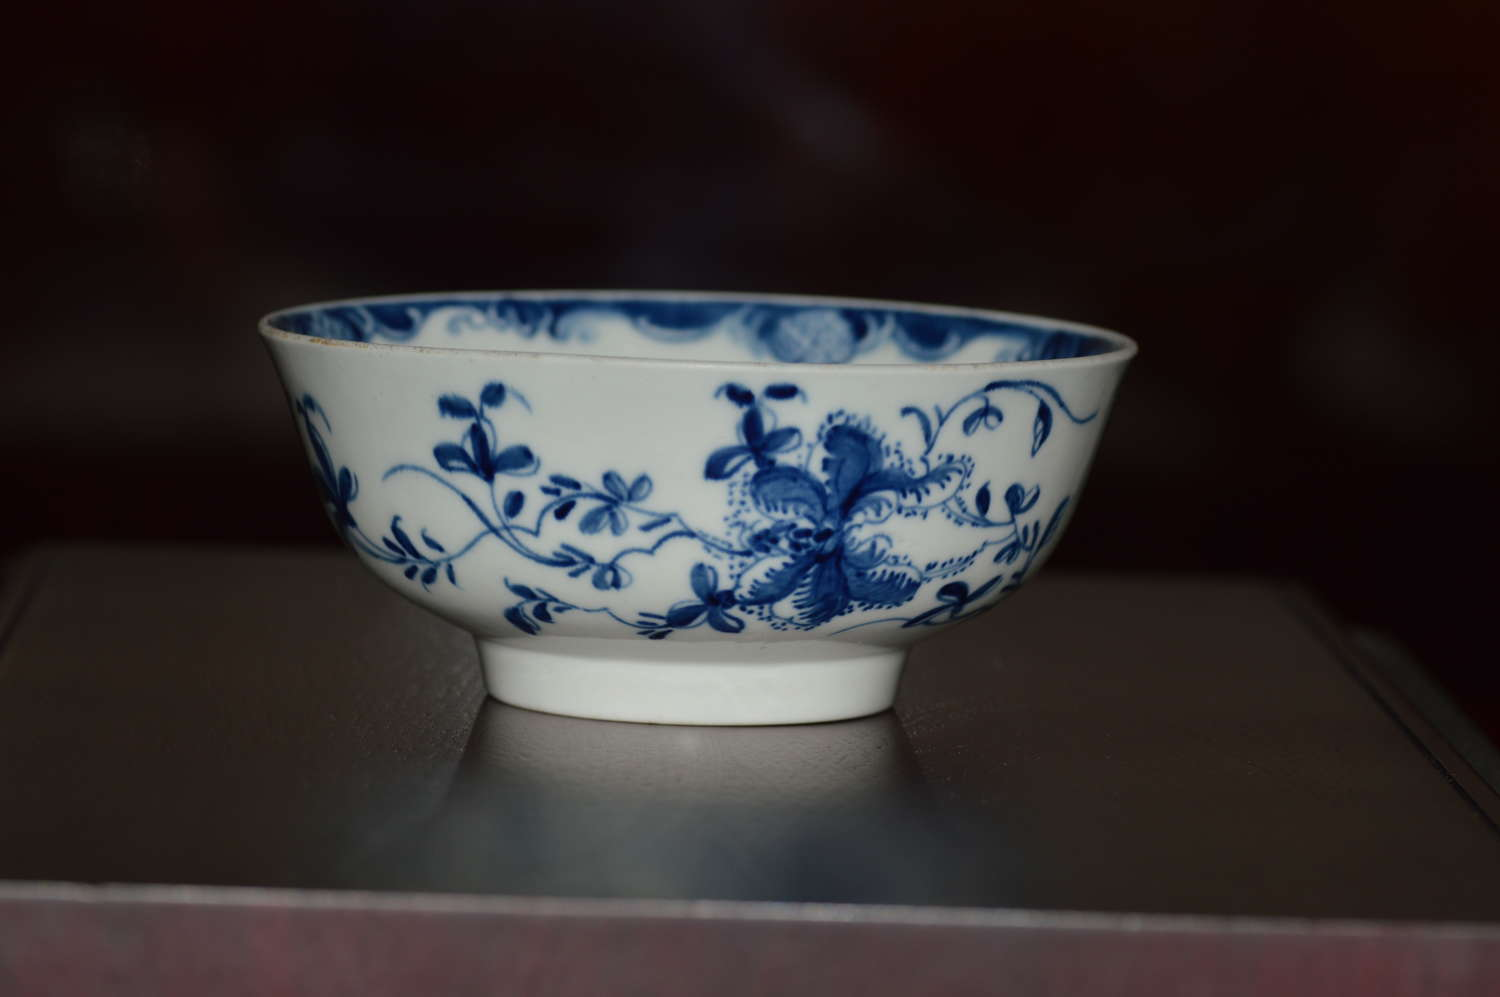 C1760 Worcester porcelain (Dr Wall/1st period) small bowl